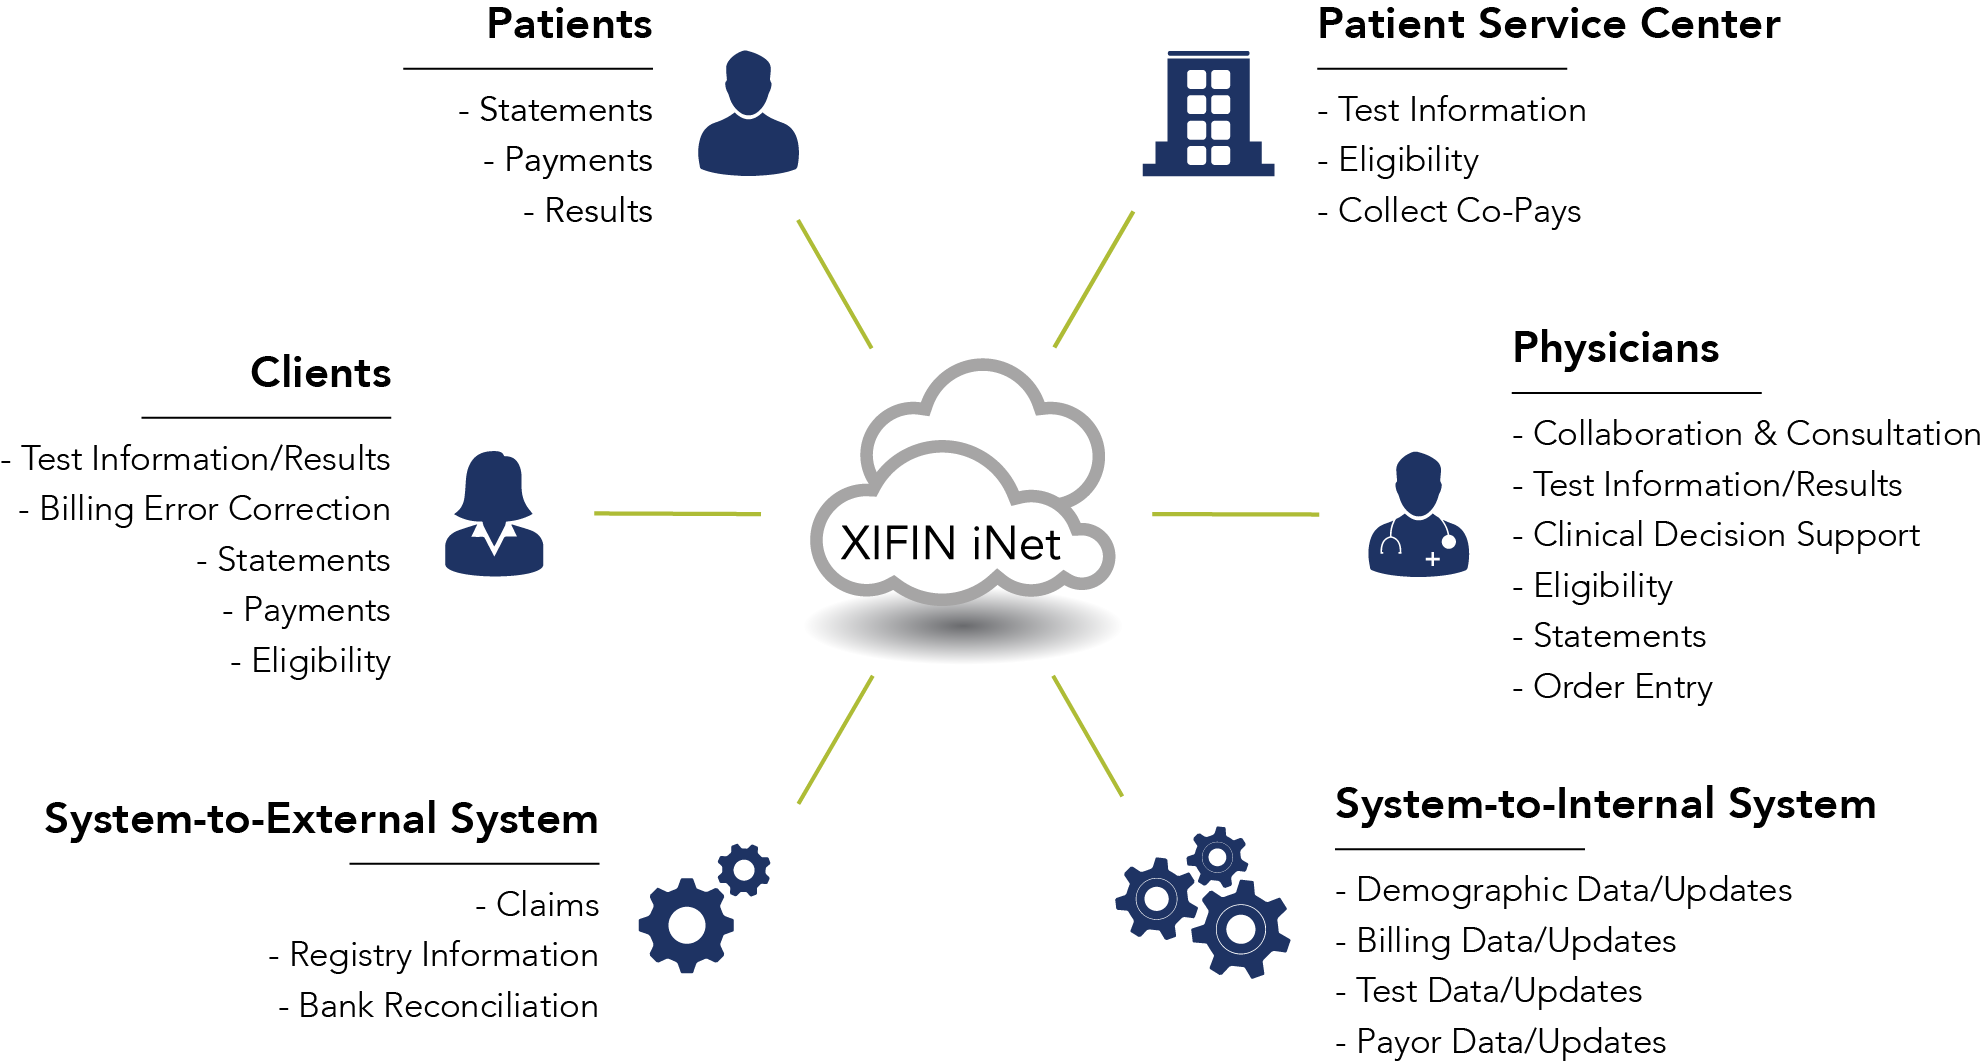 XIFIN iNet Patient and Web Services